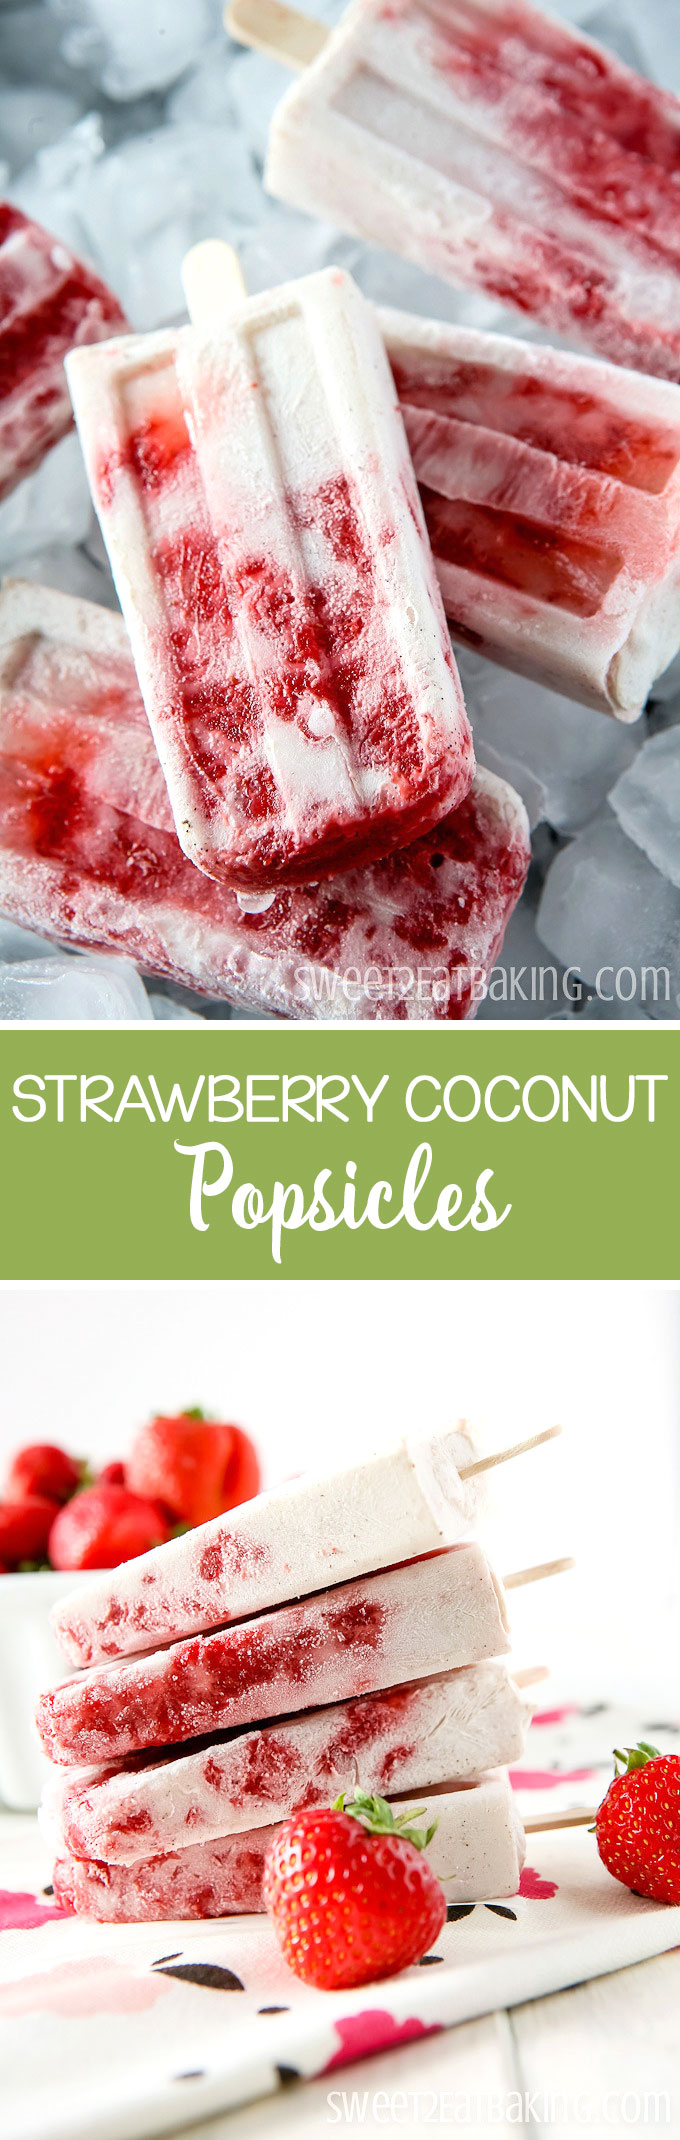 Natural Strawberry Coconut Popsicles Recipe by Sweet2EatBaking.com | Made using all natural ingredients- no refined sugar! Using strawberries, coconut milk, honey, and vanilla bean paste. A delicious way to beat the heat this summer!